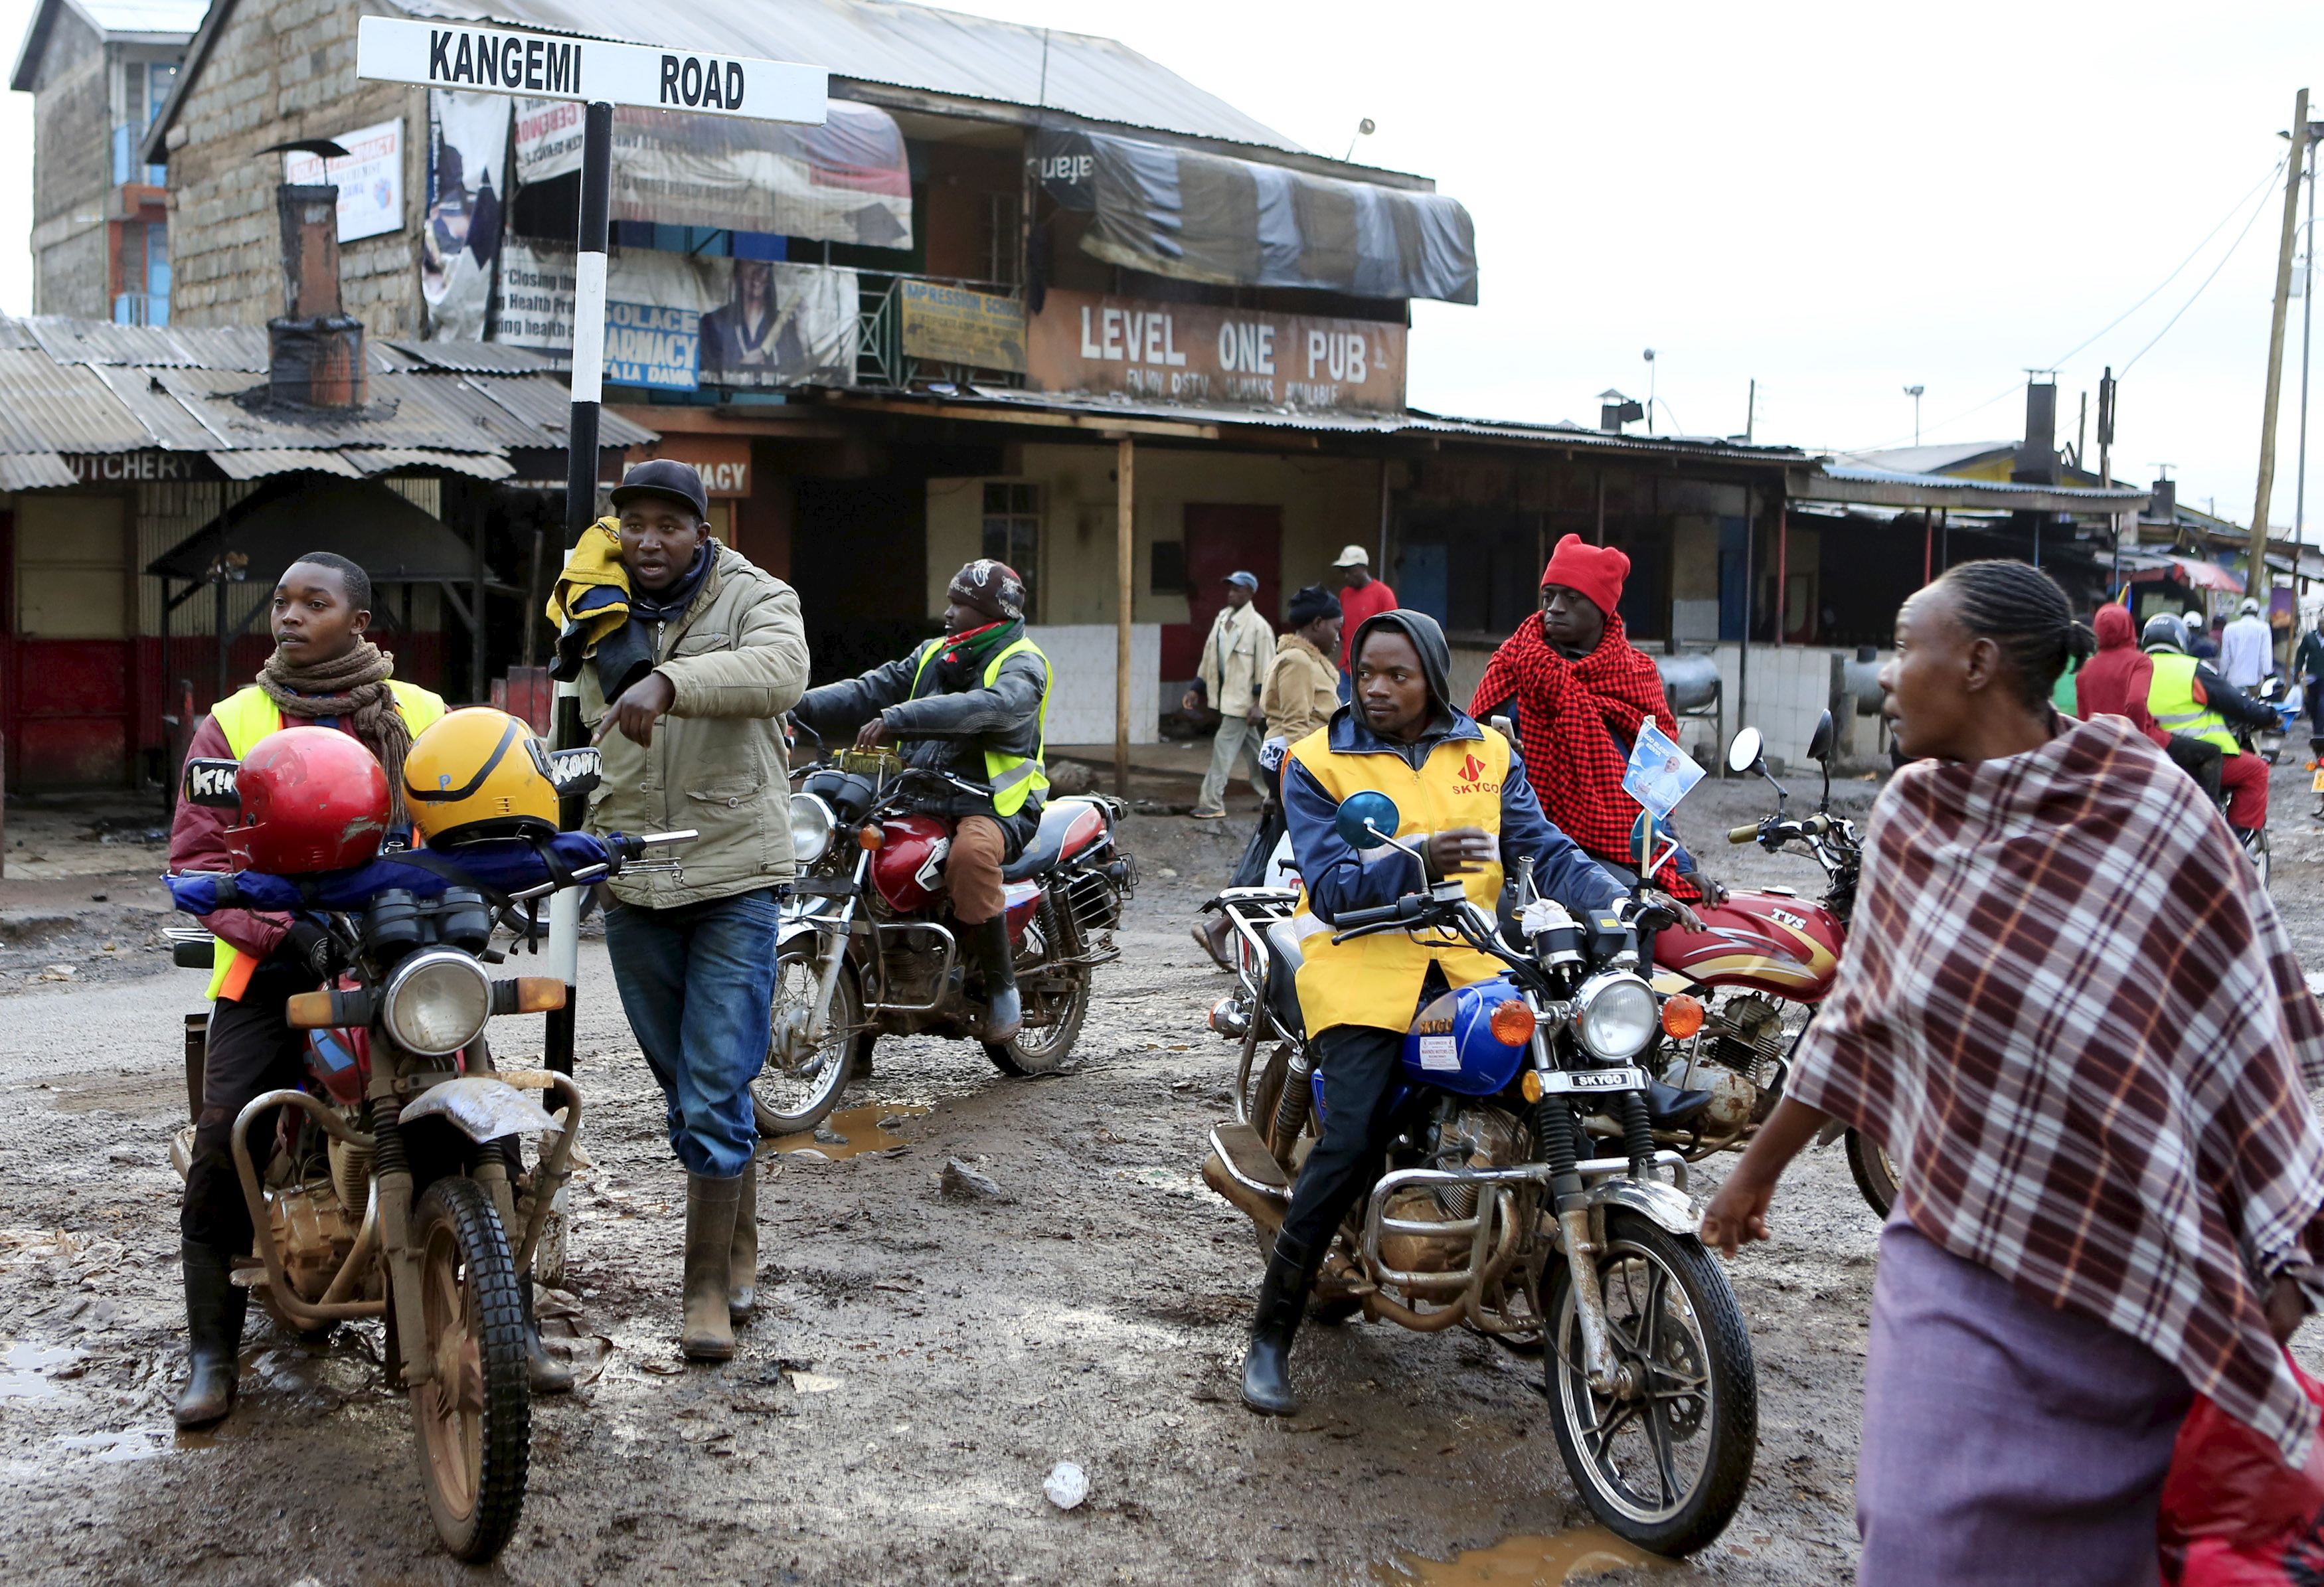 """Motorbike riders, referred to locally as """"boda boda"""" drivers, wait to transport people to the venue where Pope Francis is expected to lead a mass in the Kangemi slums on outskirts of the capital Nairobi, November 27, 2015."""